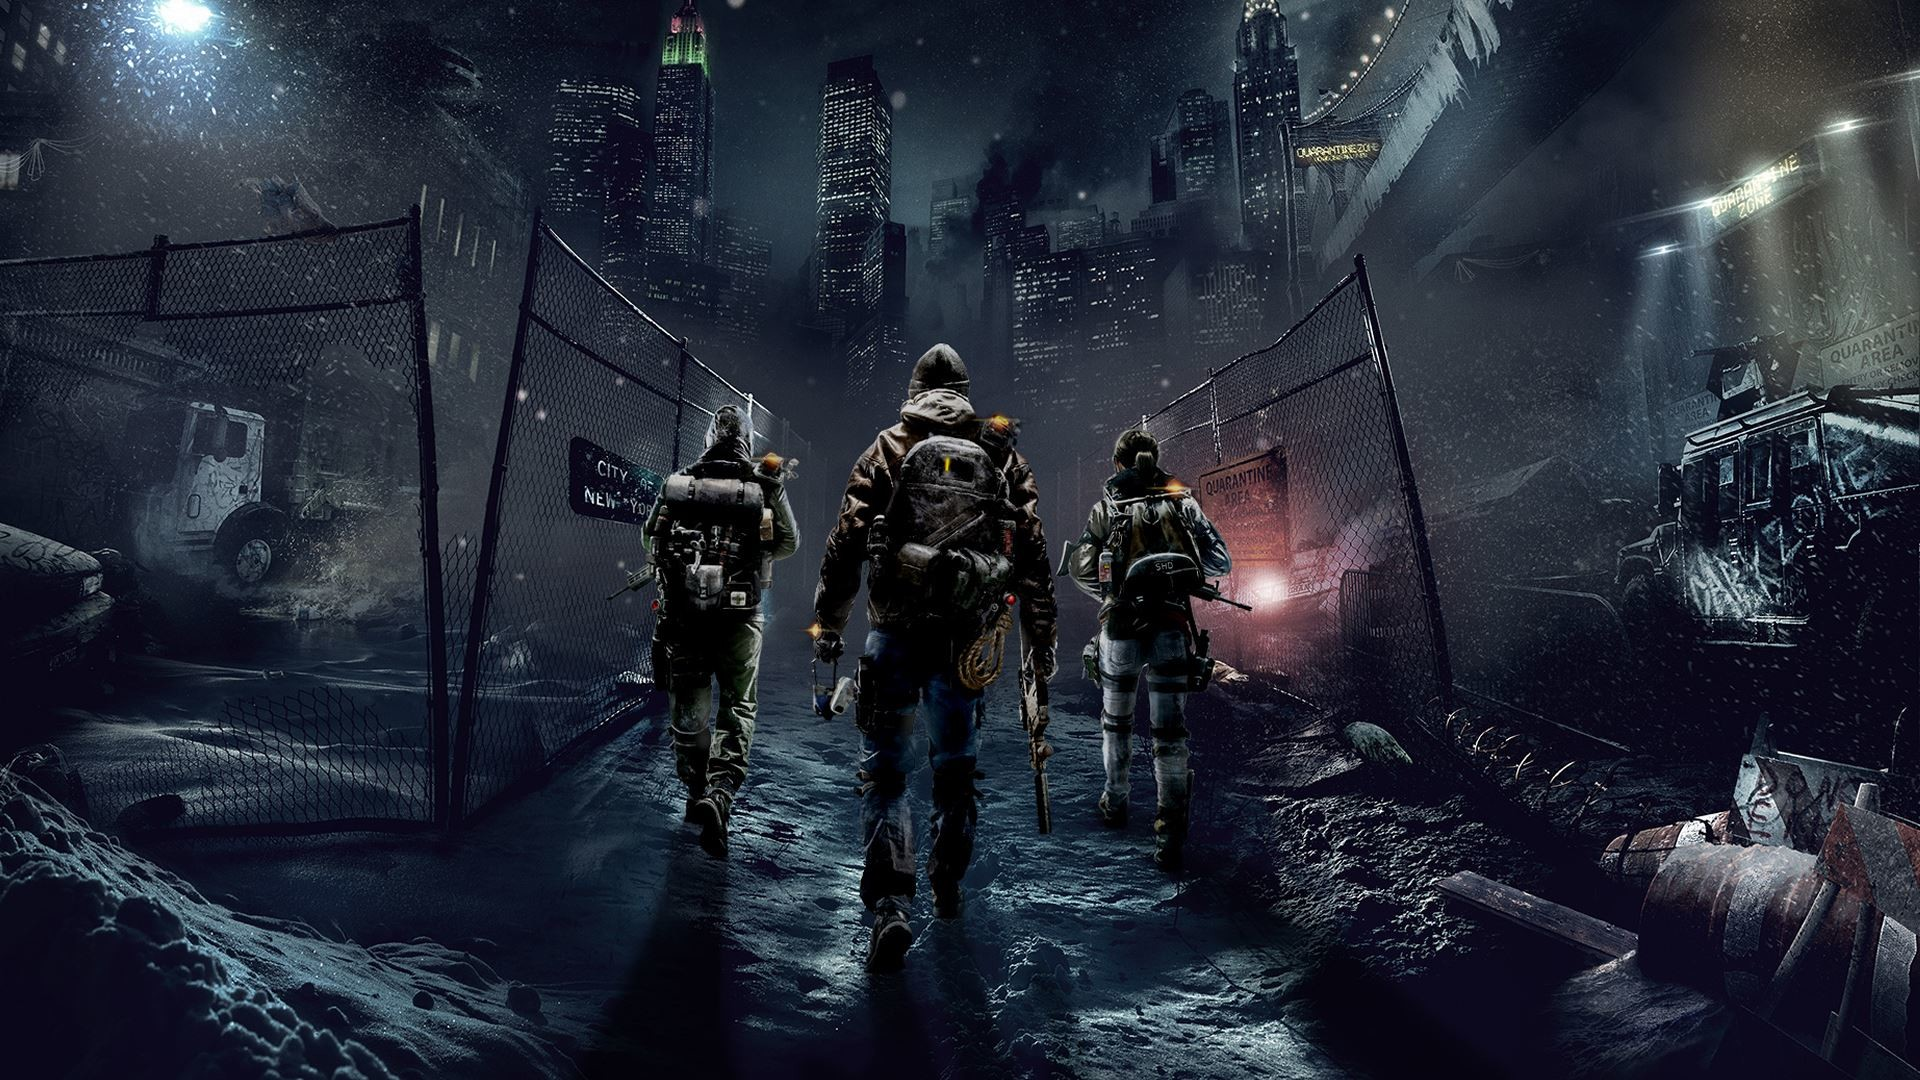 The Division Wallpaper For Pinterest The Division Wallpaper For Wall